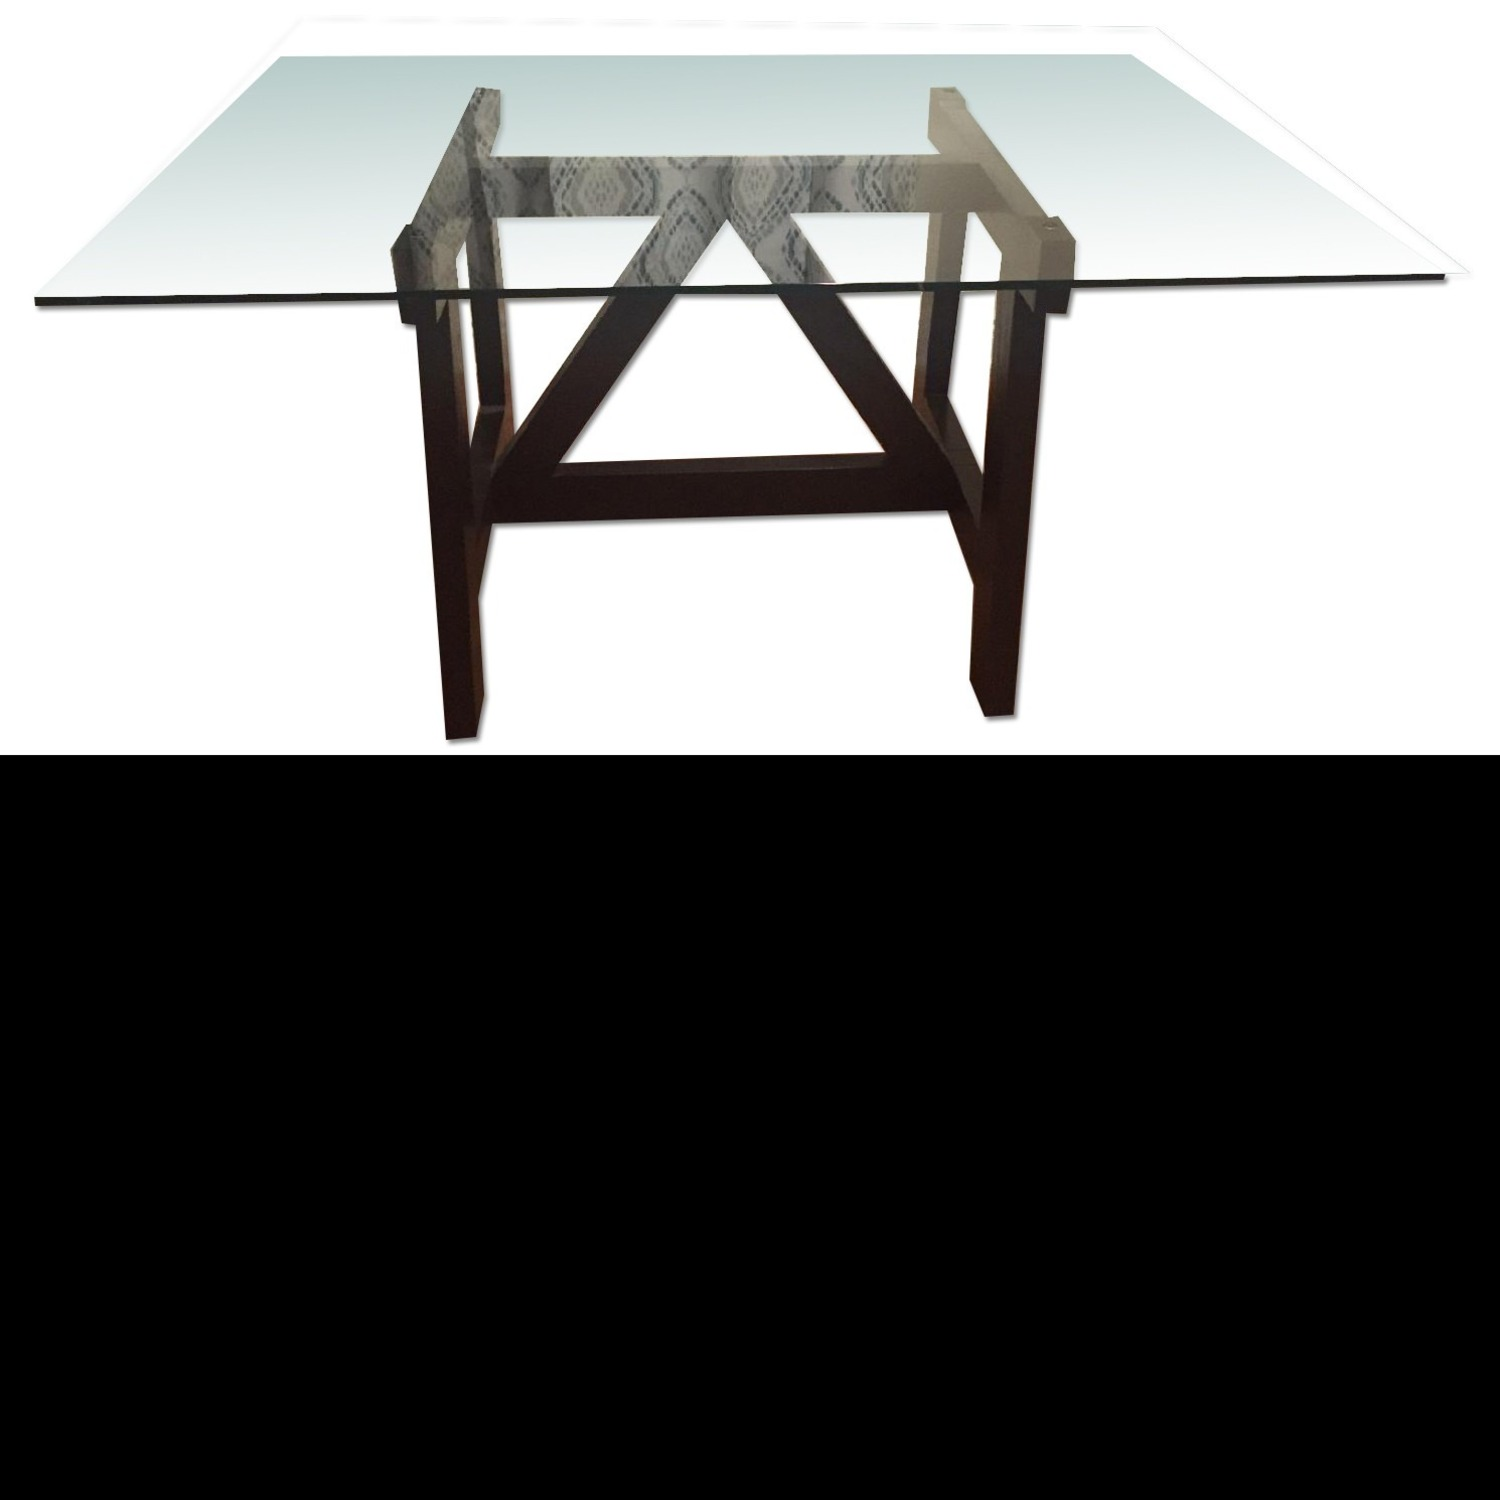 West Elm Dining Table w/ 4 Chairs - image-1